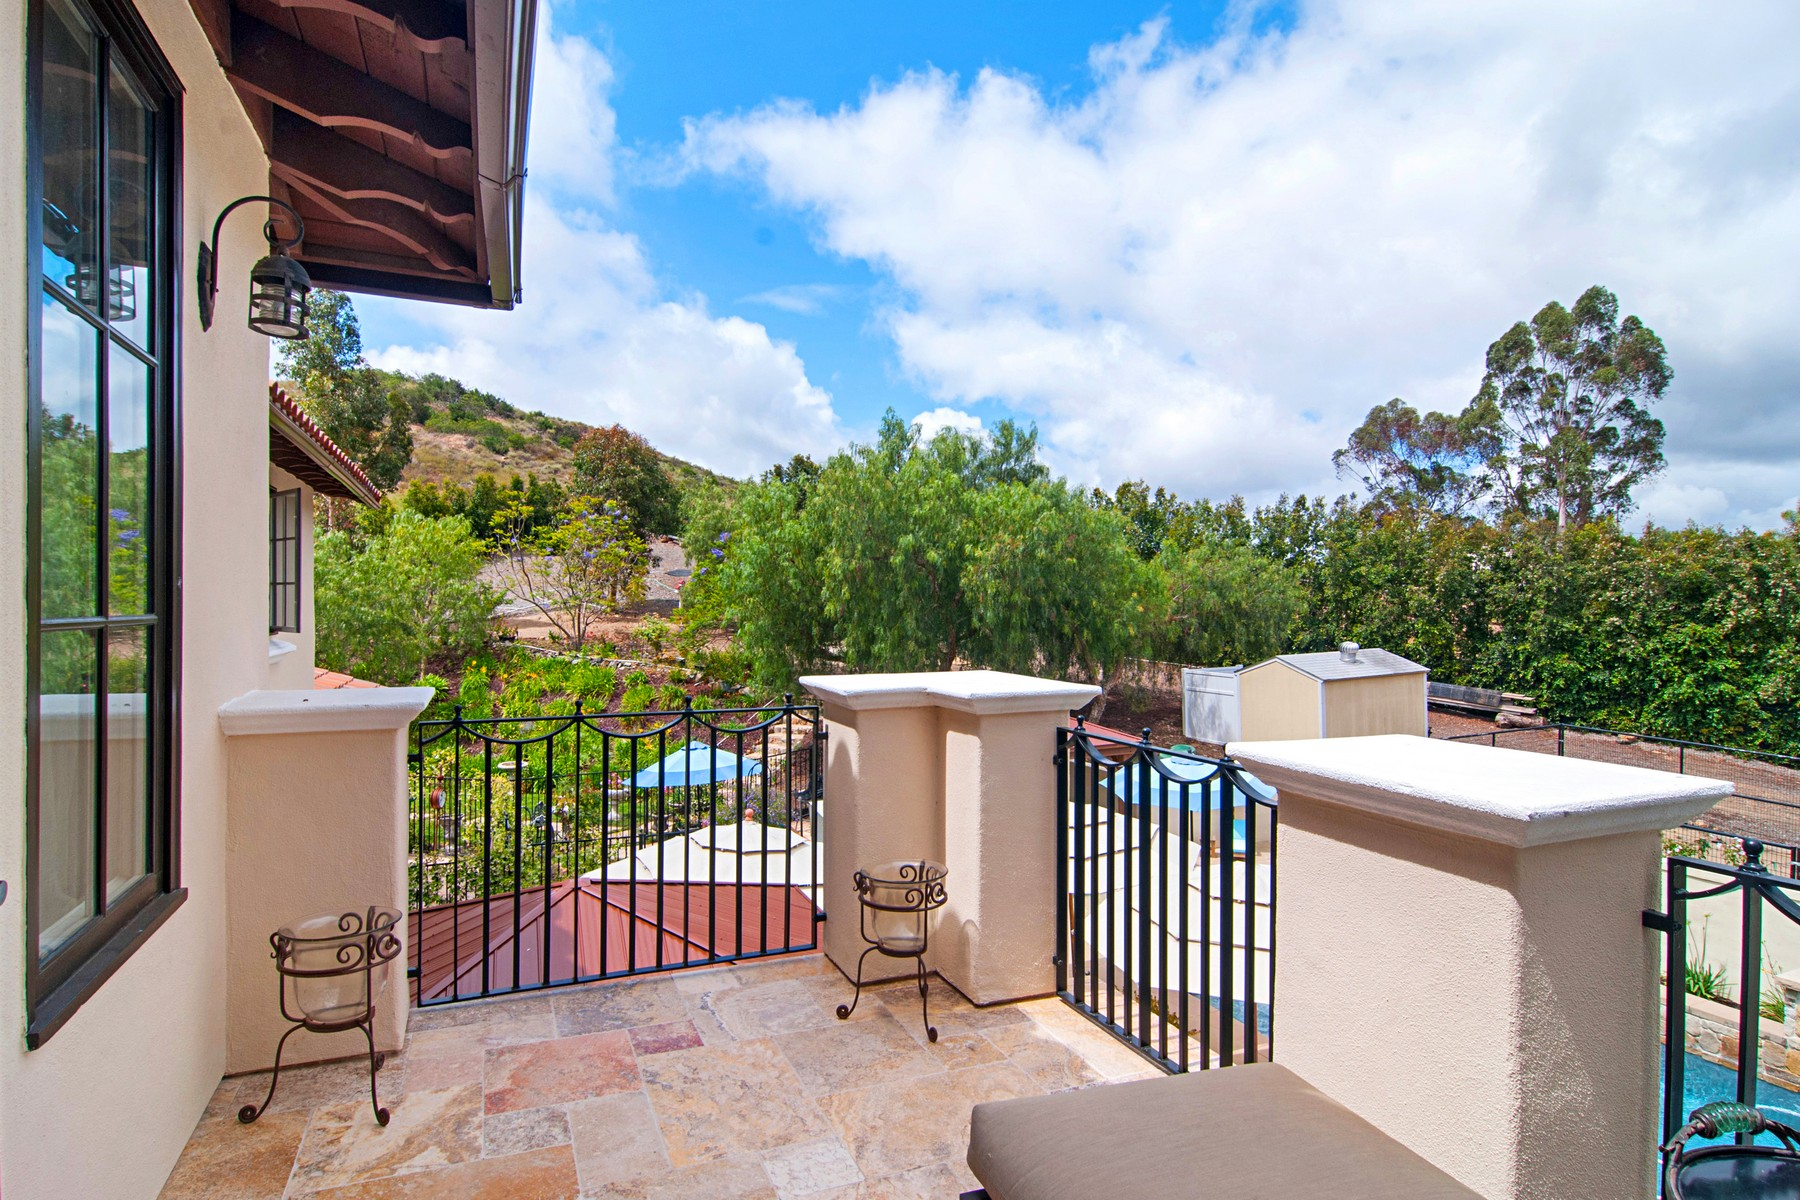 Additional photo for property listing at 7717 La Orquidia  Rancho Santa Fe, California 92067 Estados Unidos